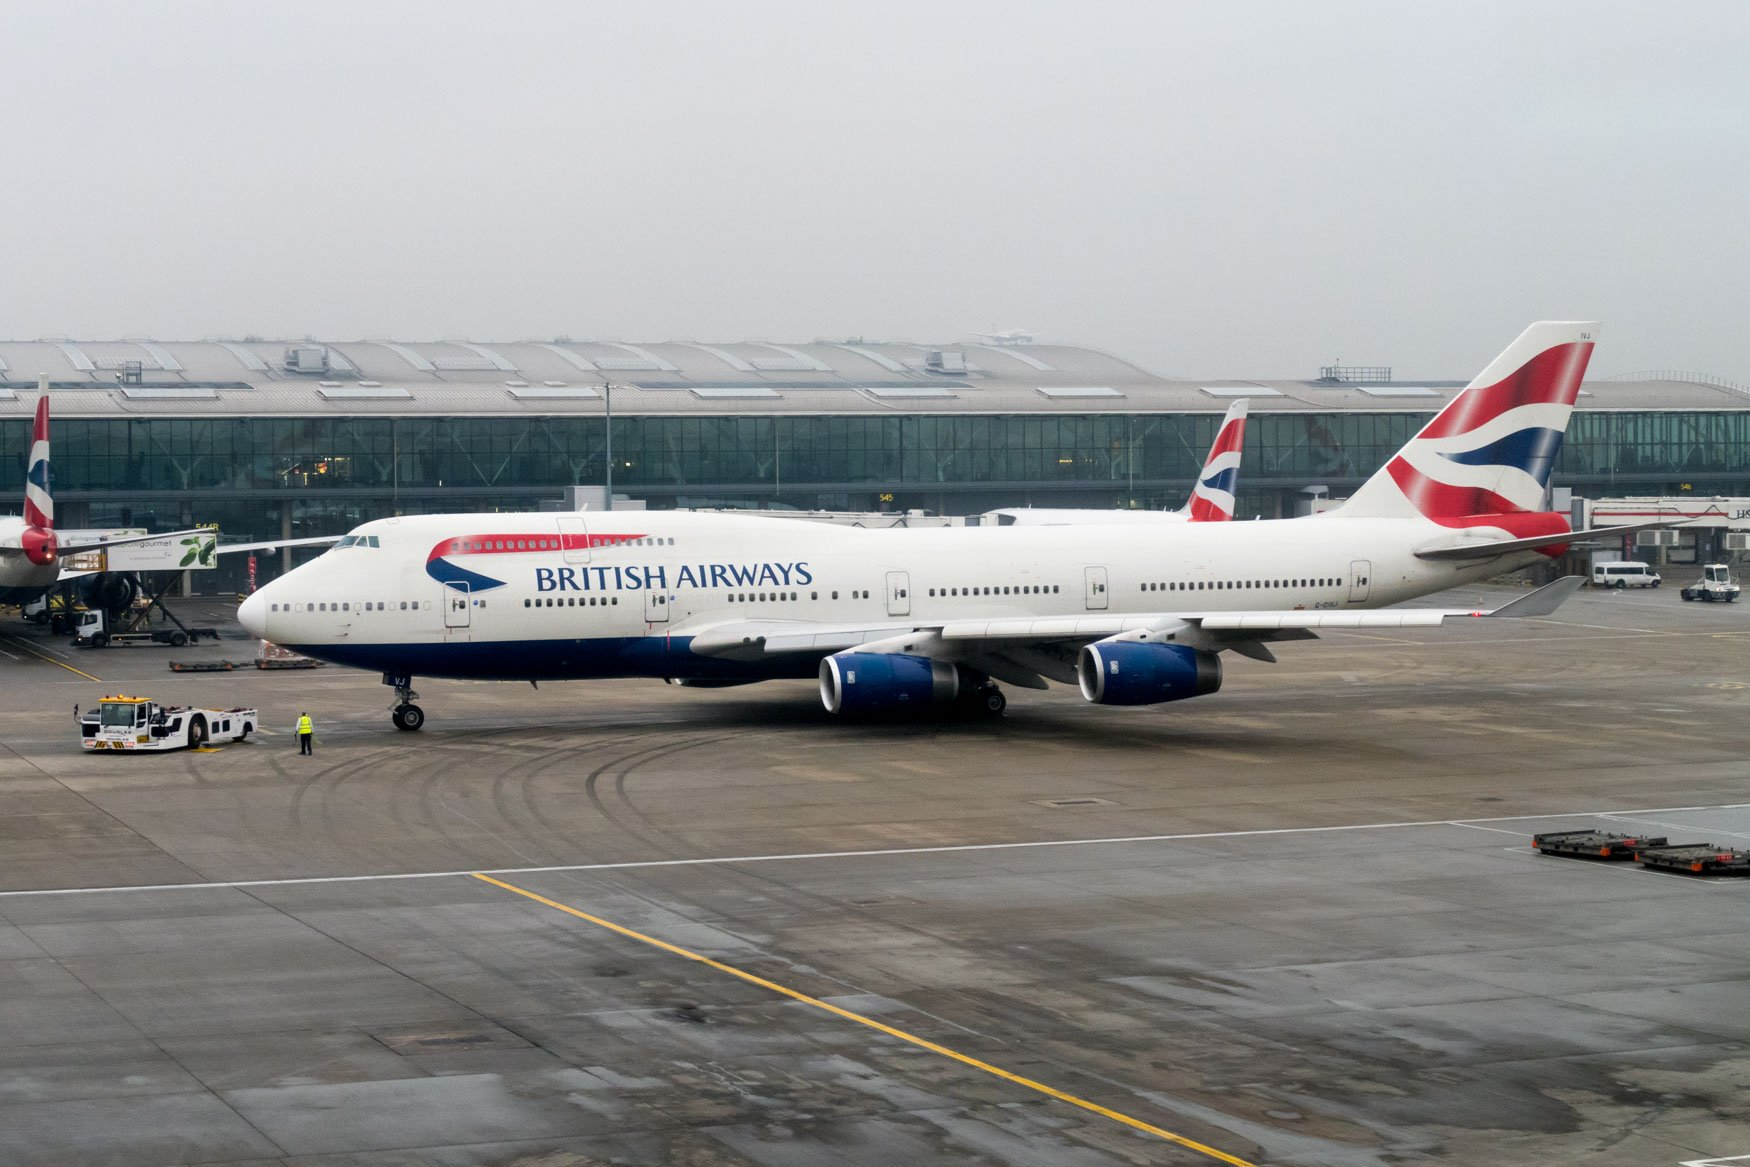 British Airways 747-400 at Heathrow